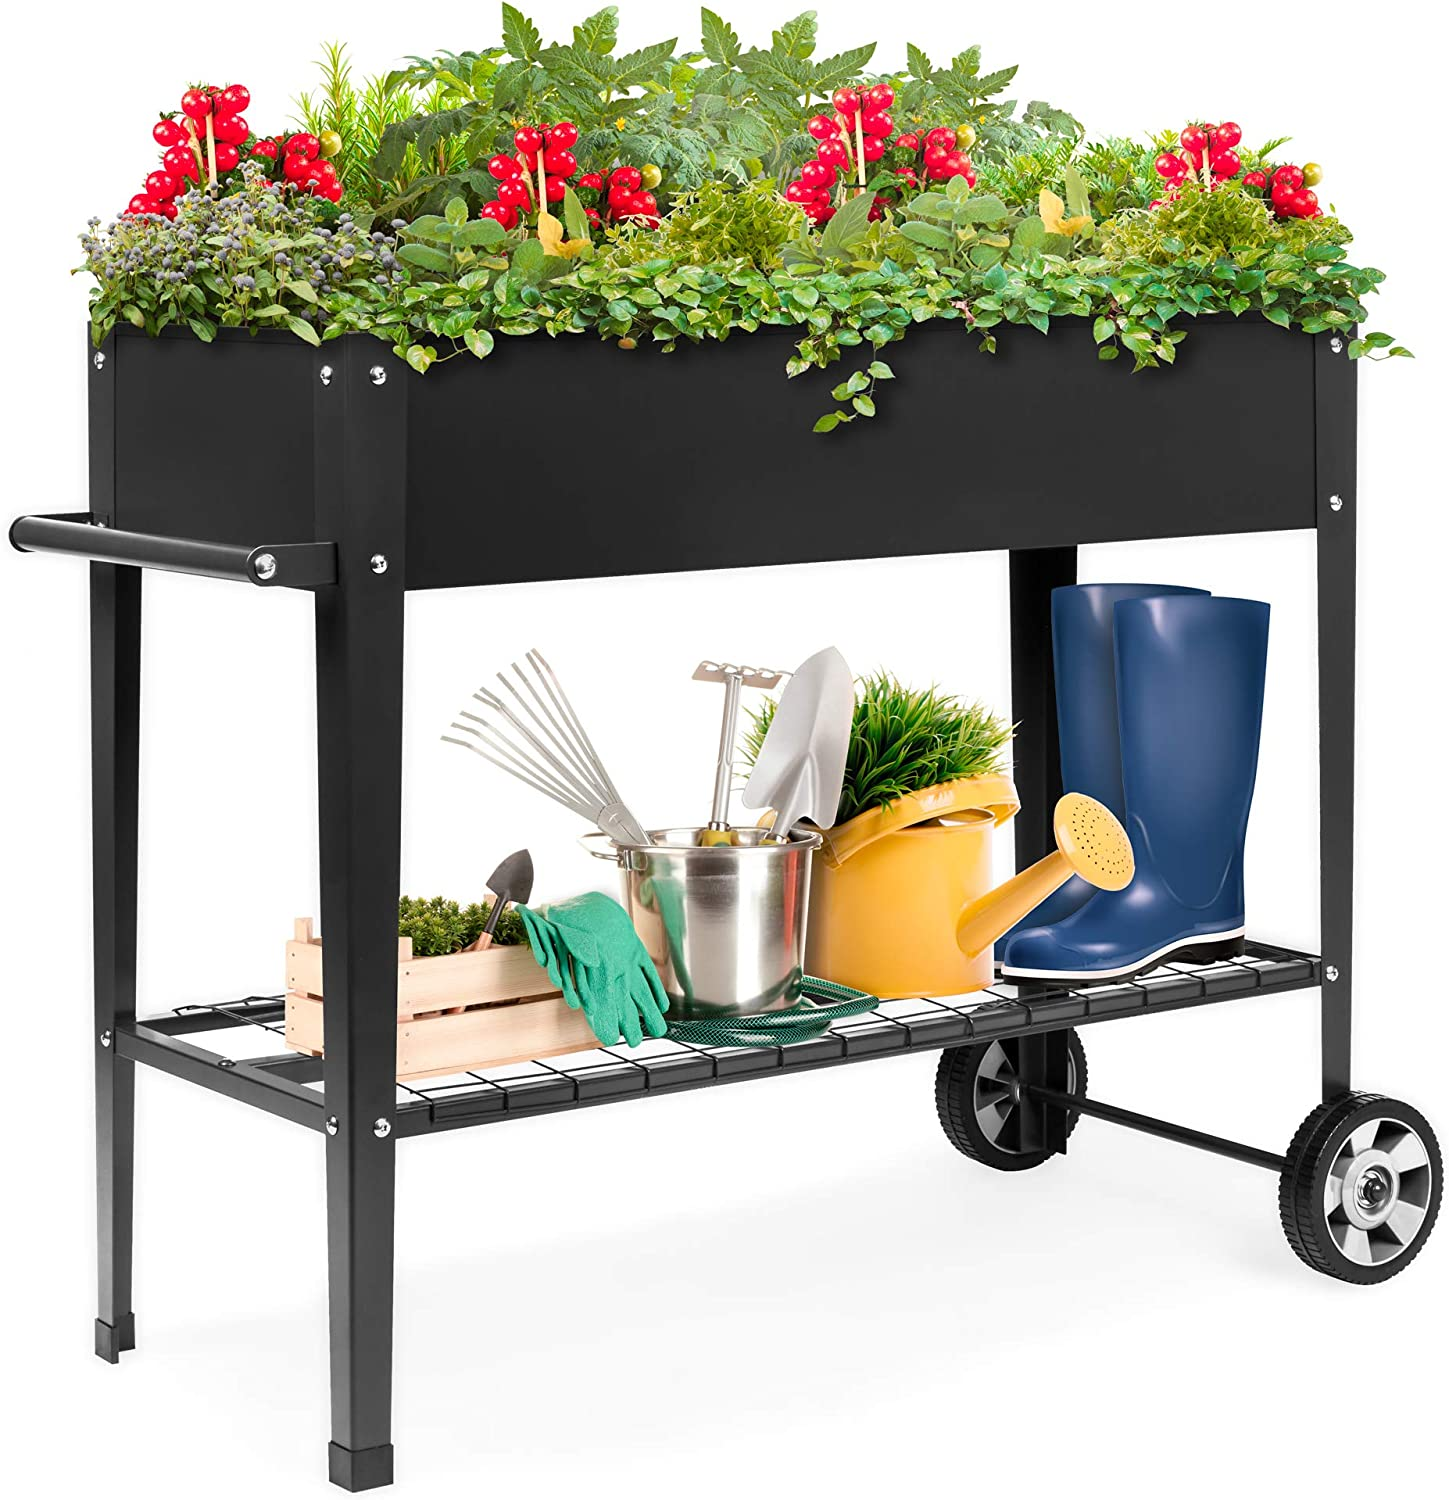 Best Choice Products Elevated Mobile Rised Ergonomic Metal Planter Garden Bed for Backyard, Patio w/Wheels, Lower Shelf, 38x16x32in, Dark Gray